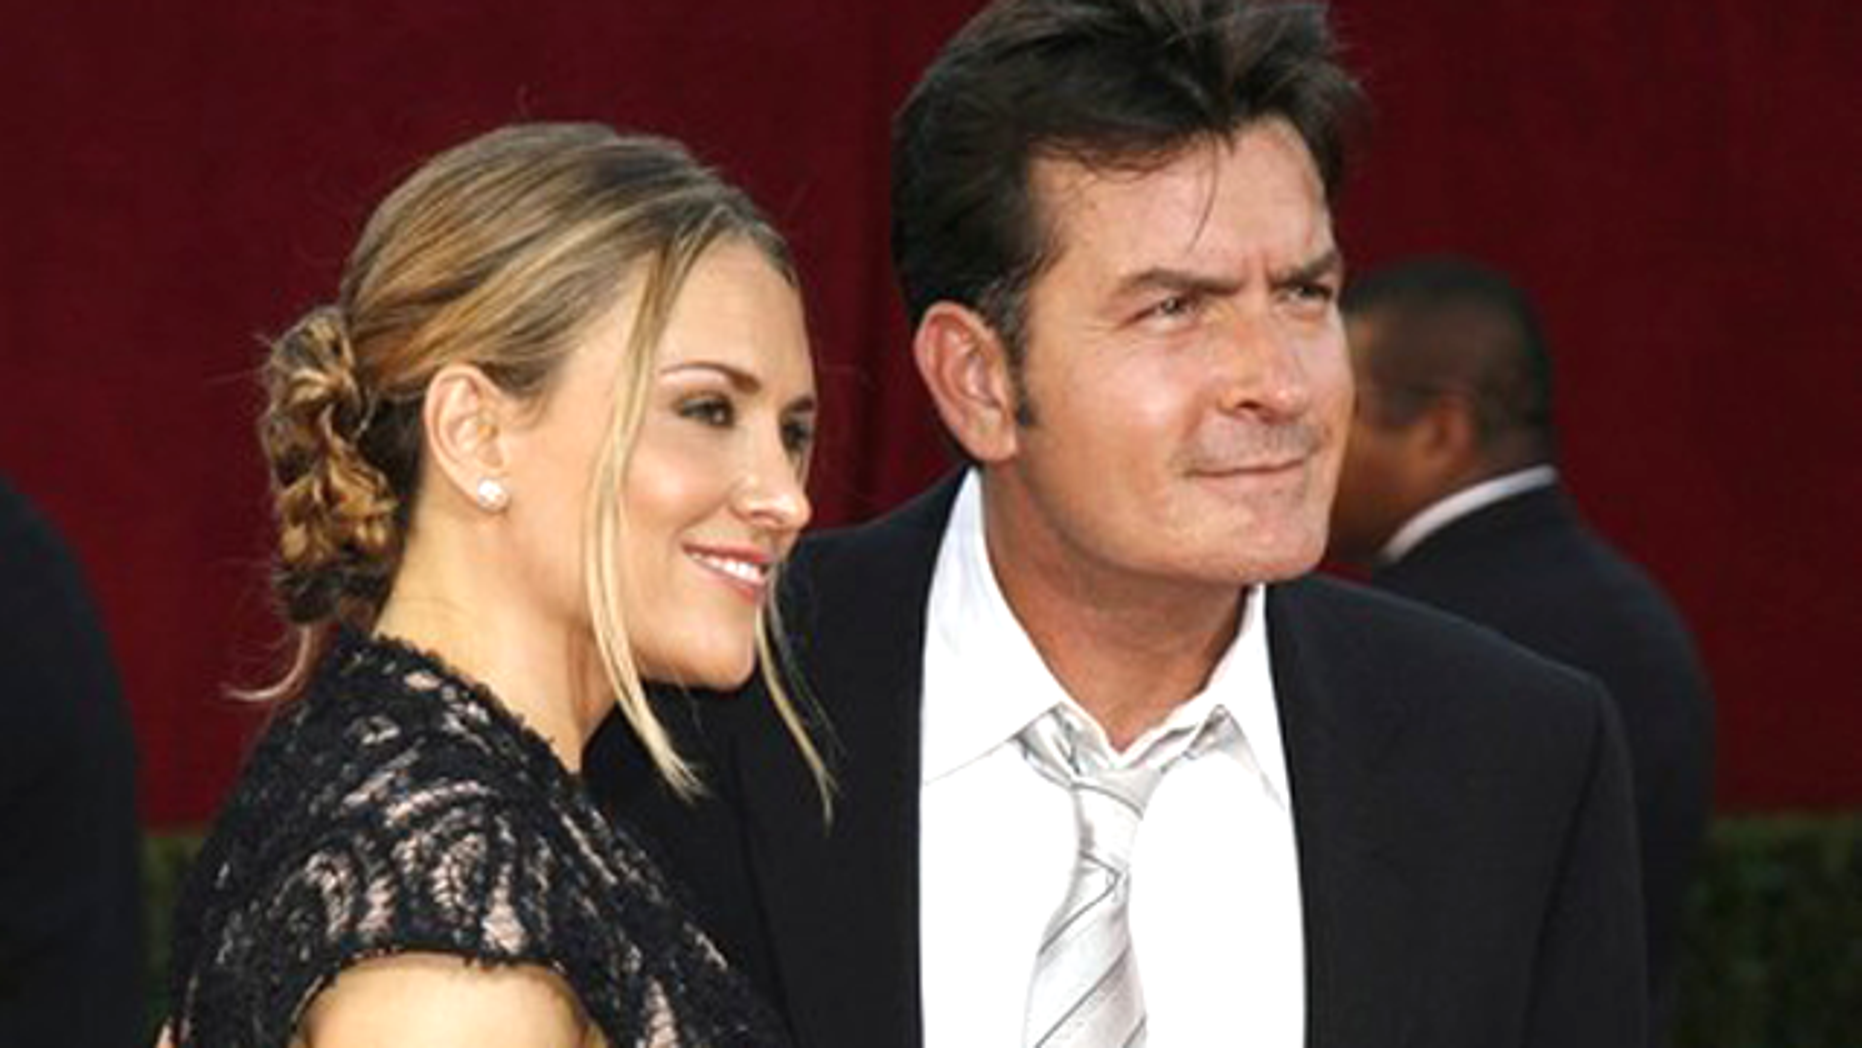 Charlie Sheen and Brooke Mueller in happier times.